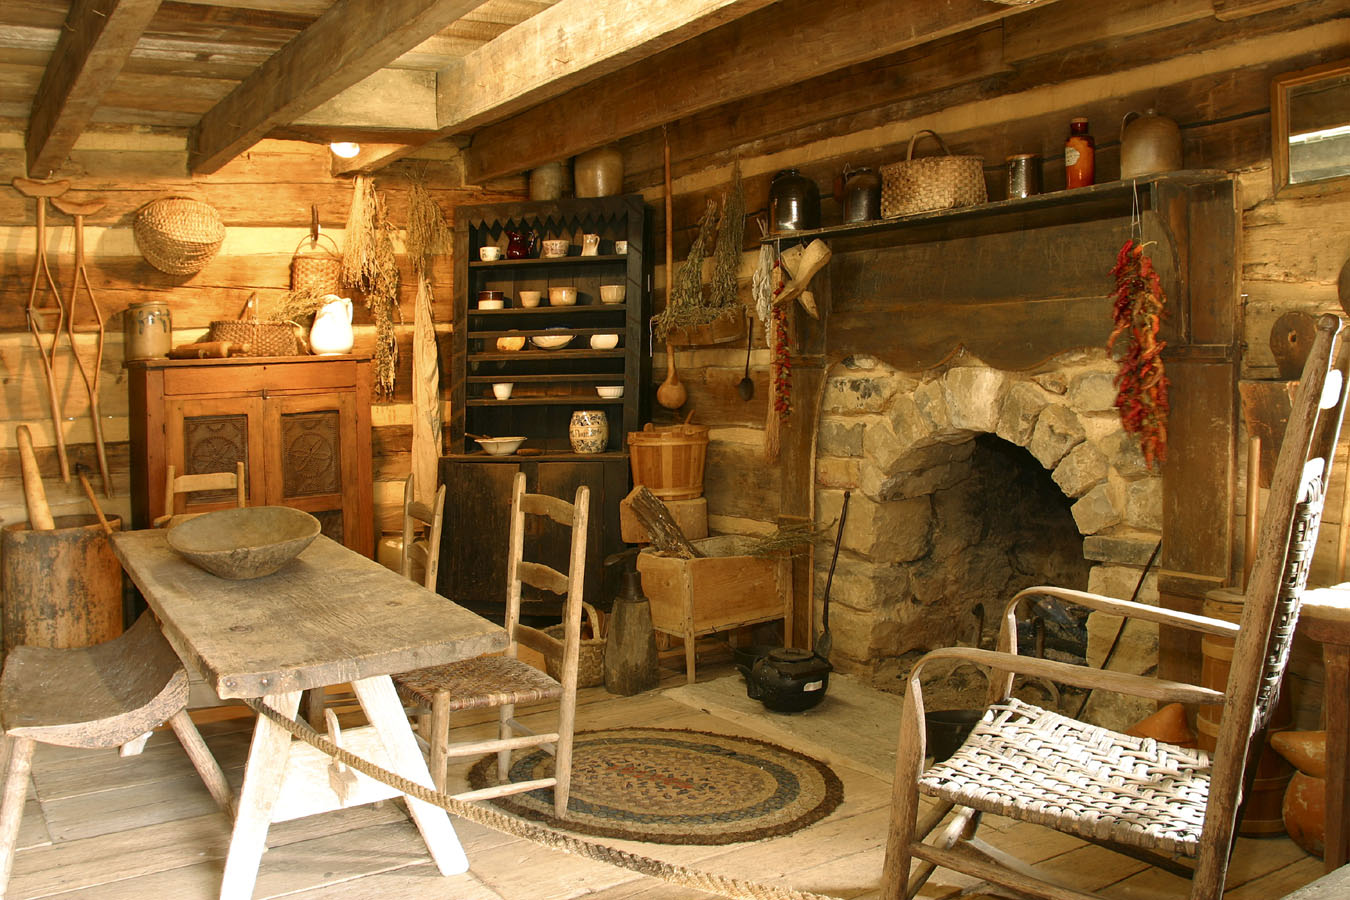 old stone fireplace. Arched stone fireplace in an old log cabin  Handmade Houses with